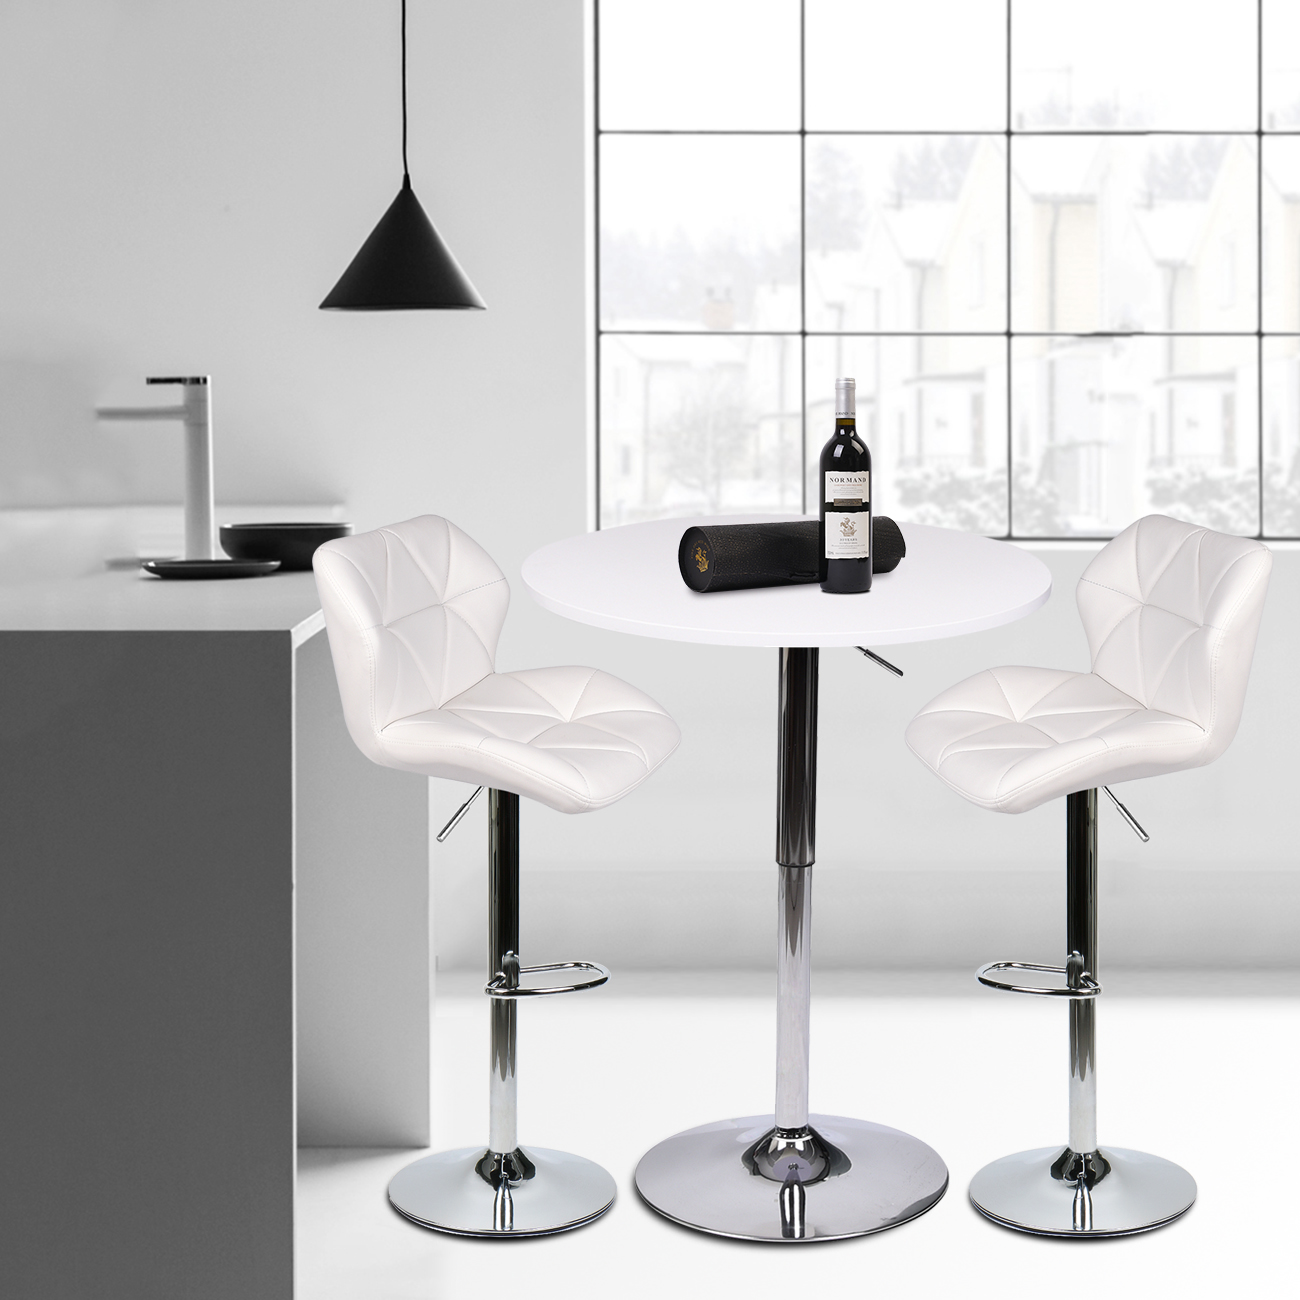 3 Pieces Adjustable Bar Table Set With 2 Swivel Stools Pub Kitchen Dining Chairs